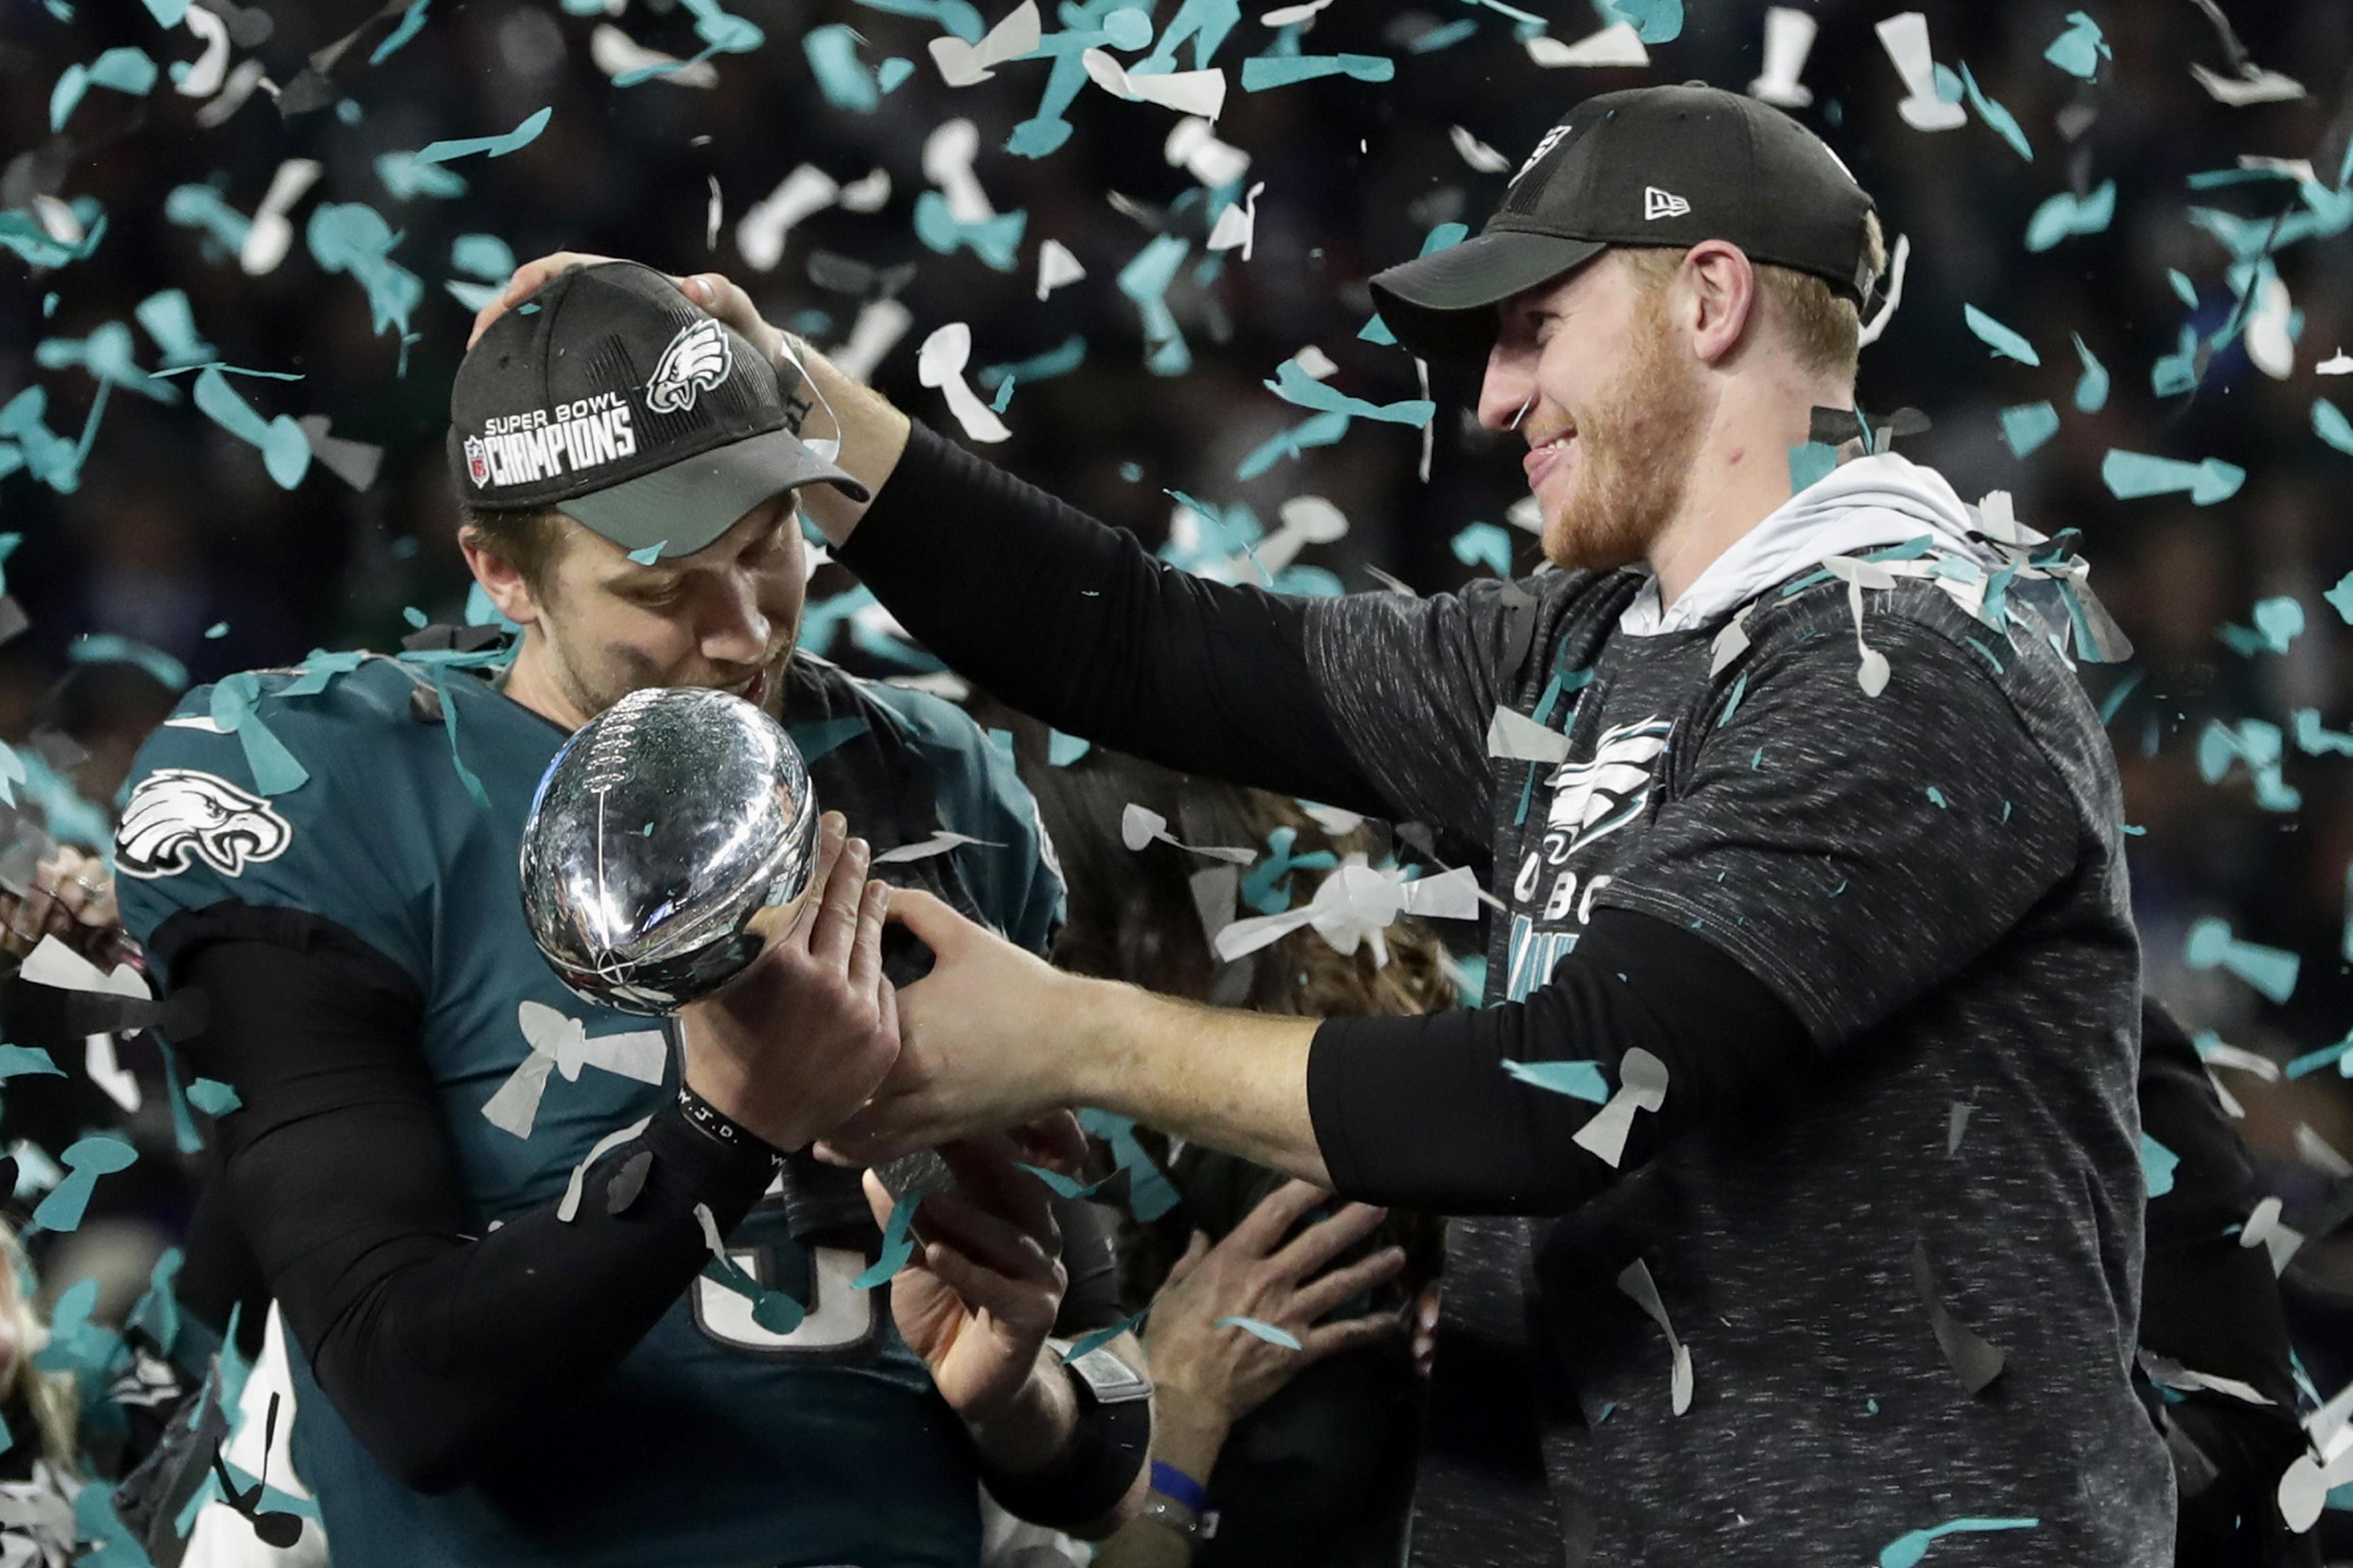 Philadelphia Eagles sprung what was seen as a big shock to win Super Bowl 52